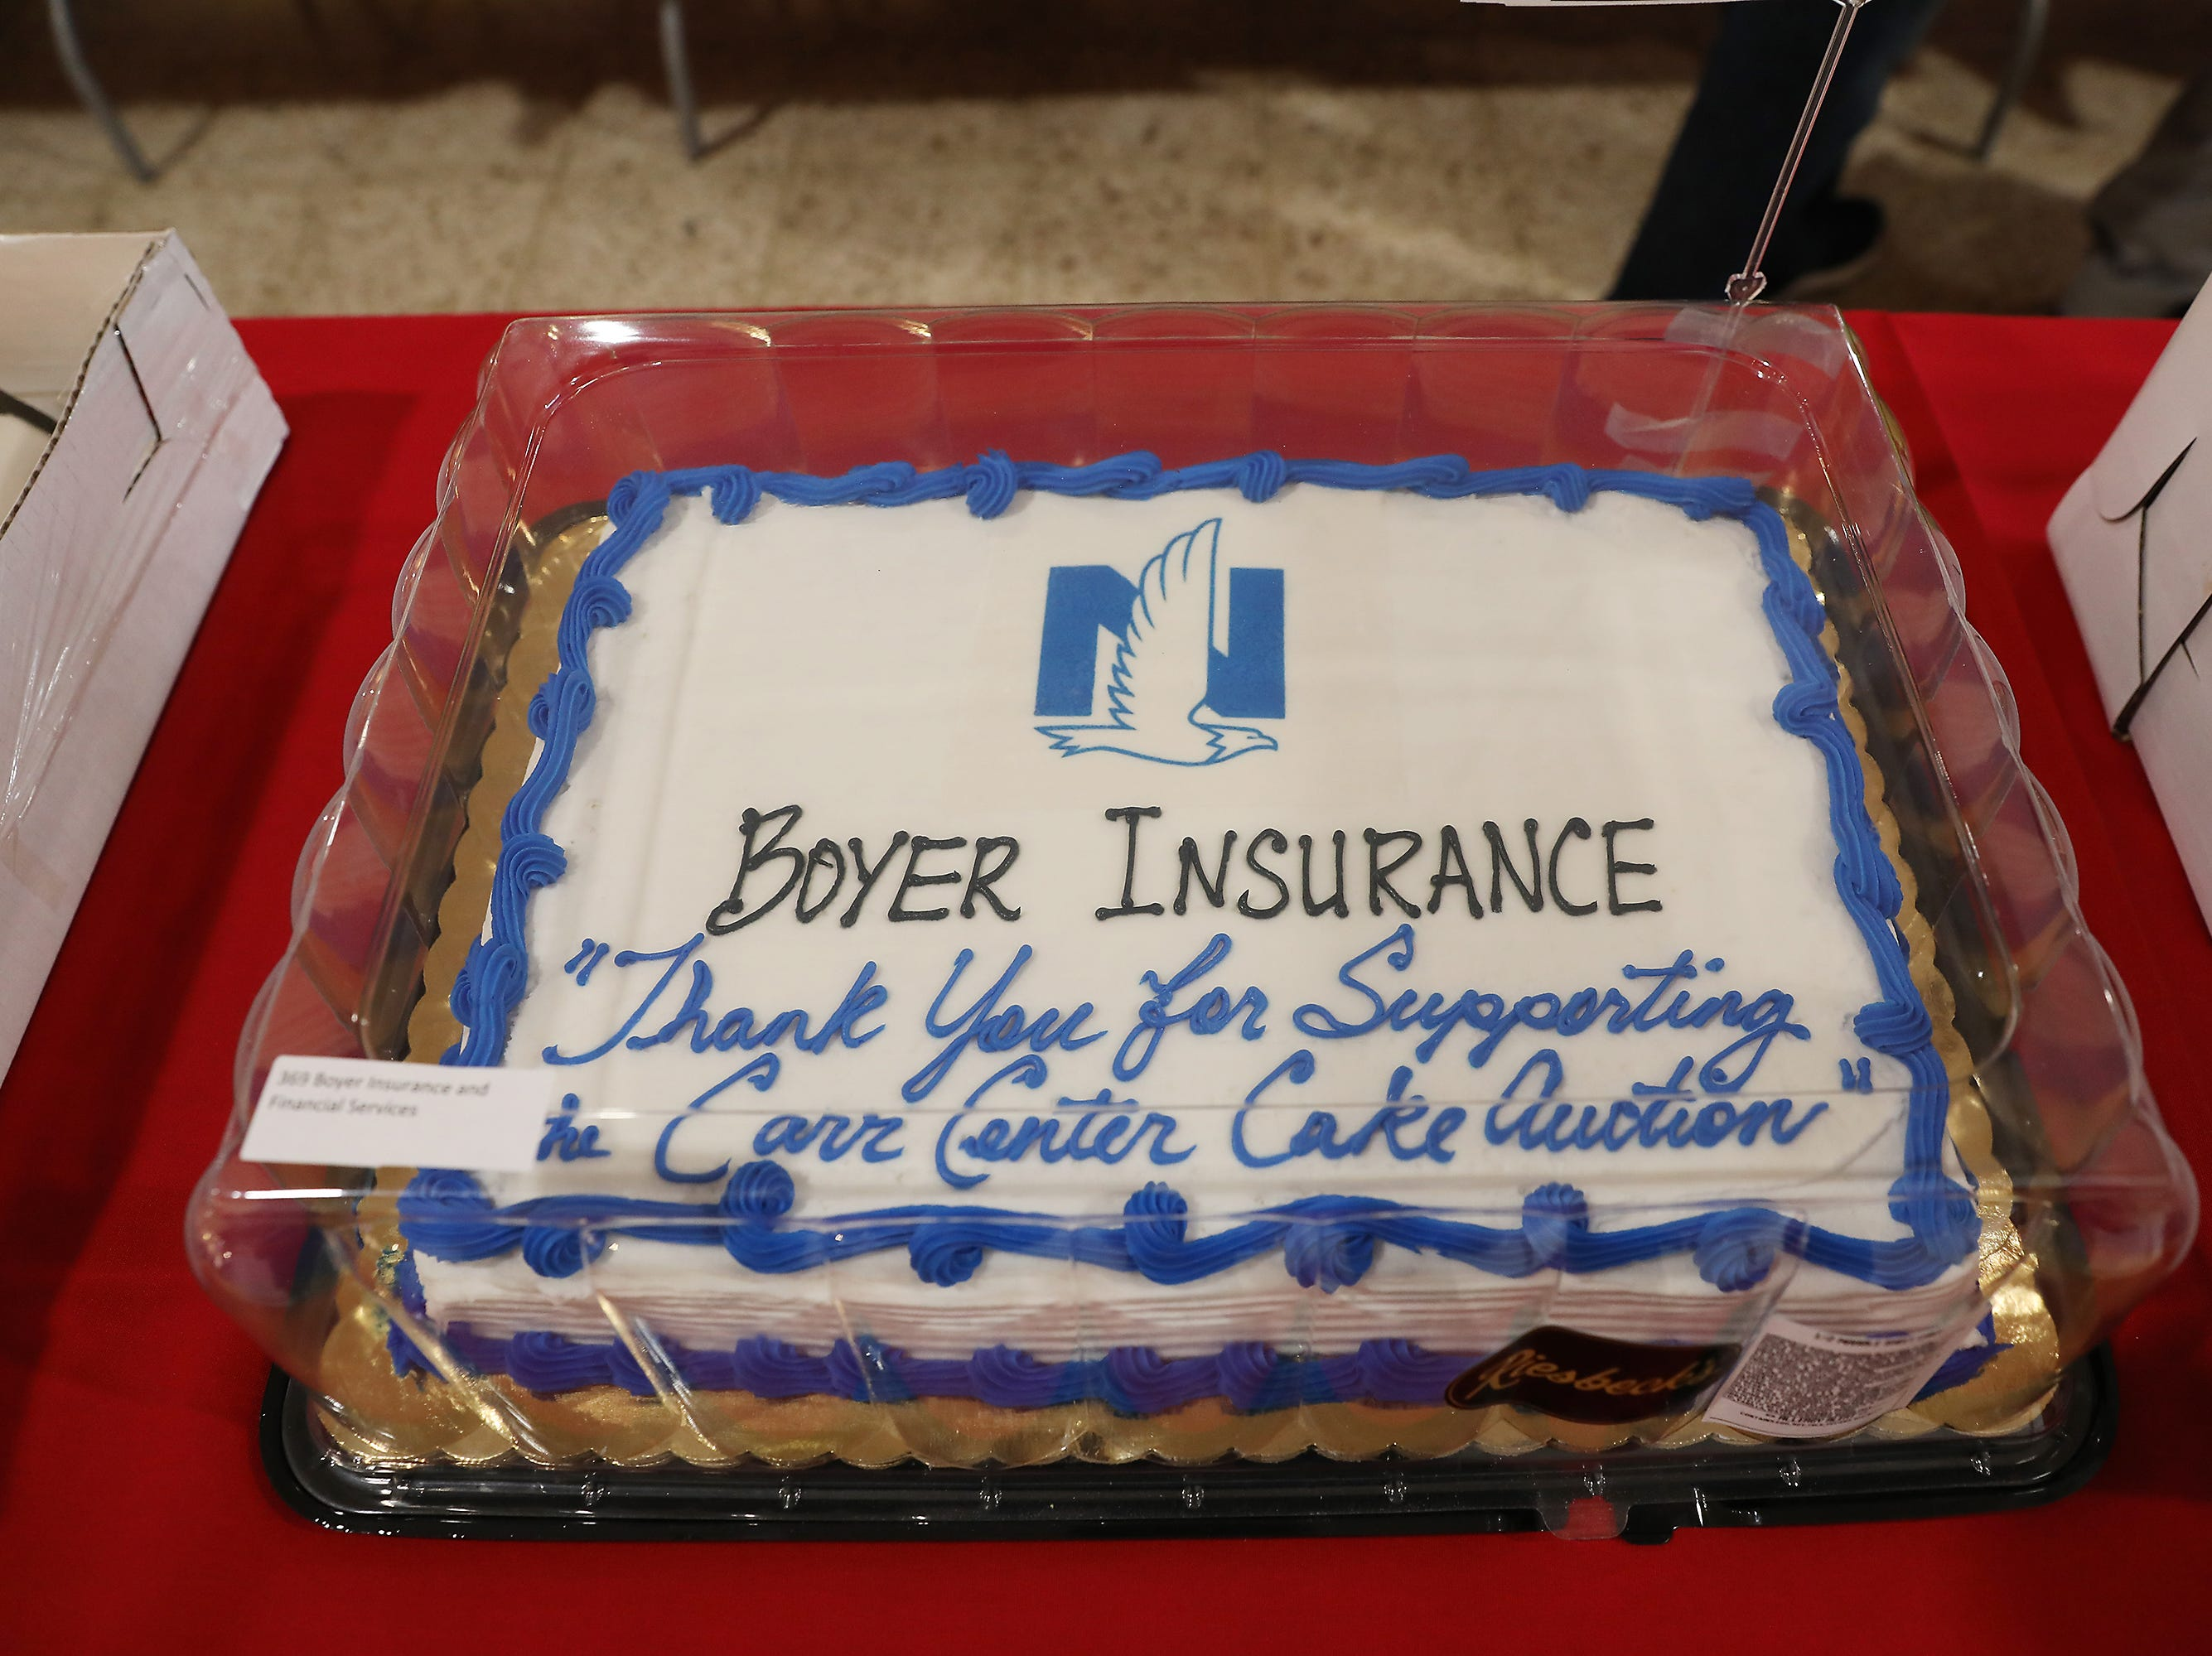 3:45 P.M. Friday cake 369 Boyer Insurance and Financial Services - 2 tickets to the Buckeye Country Superfest June 8, at the Ohio Stadium; $370